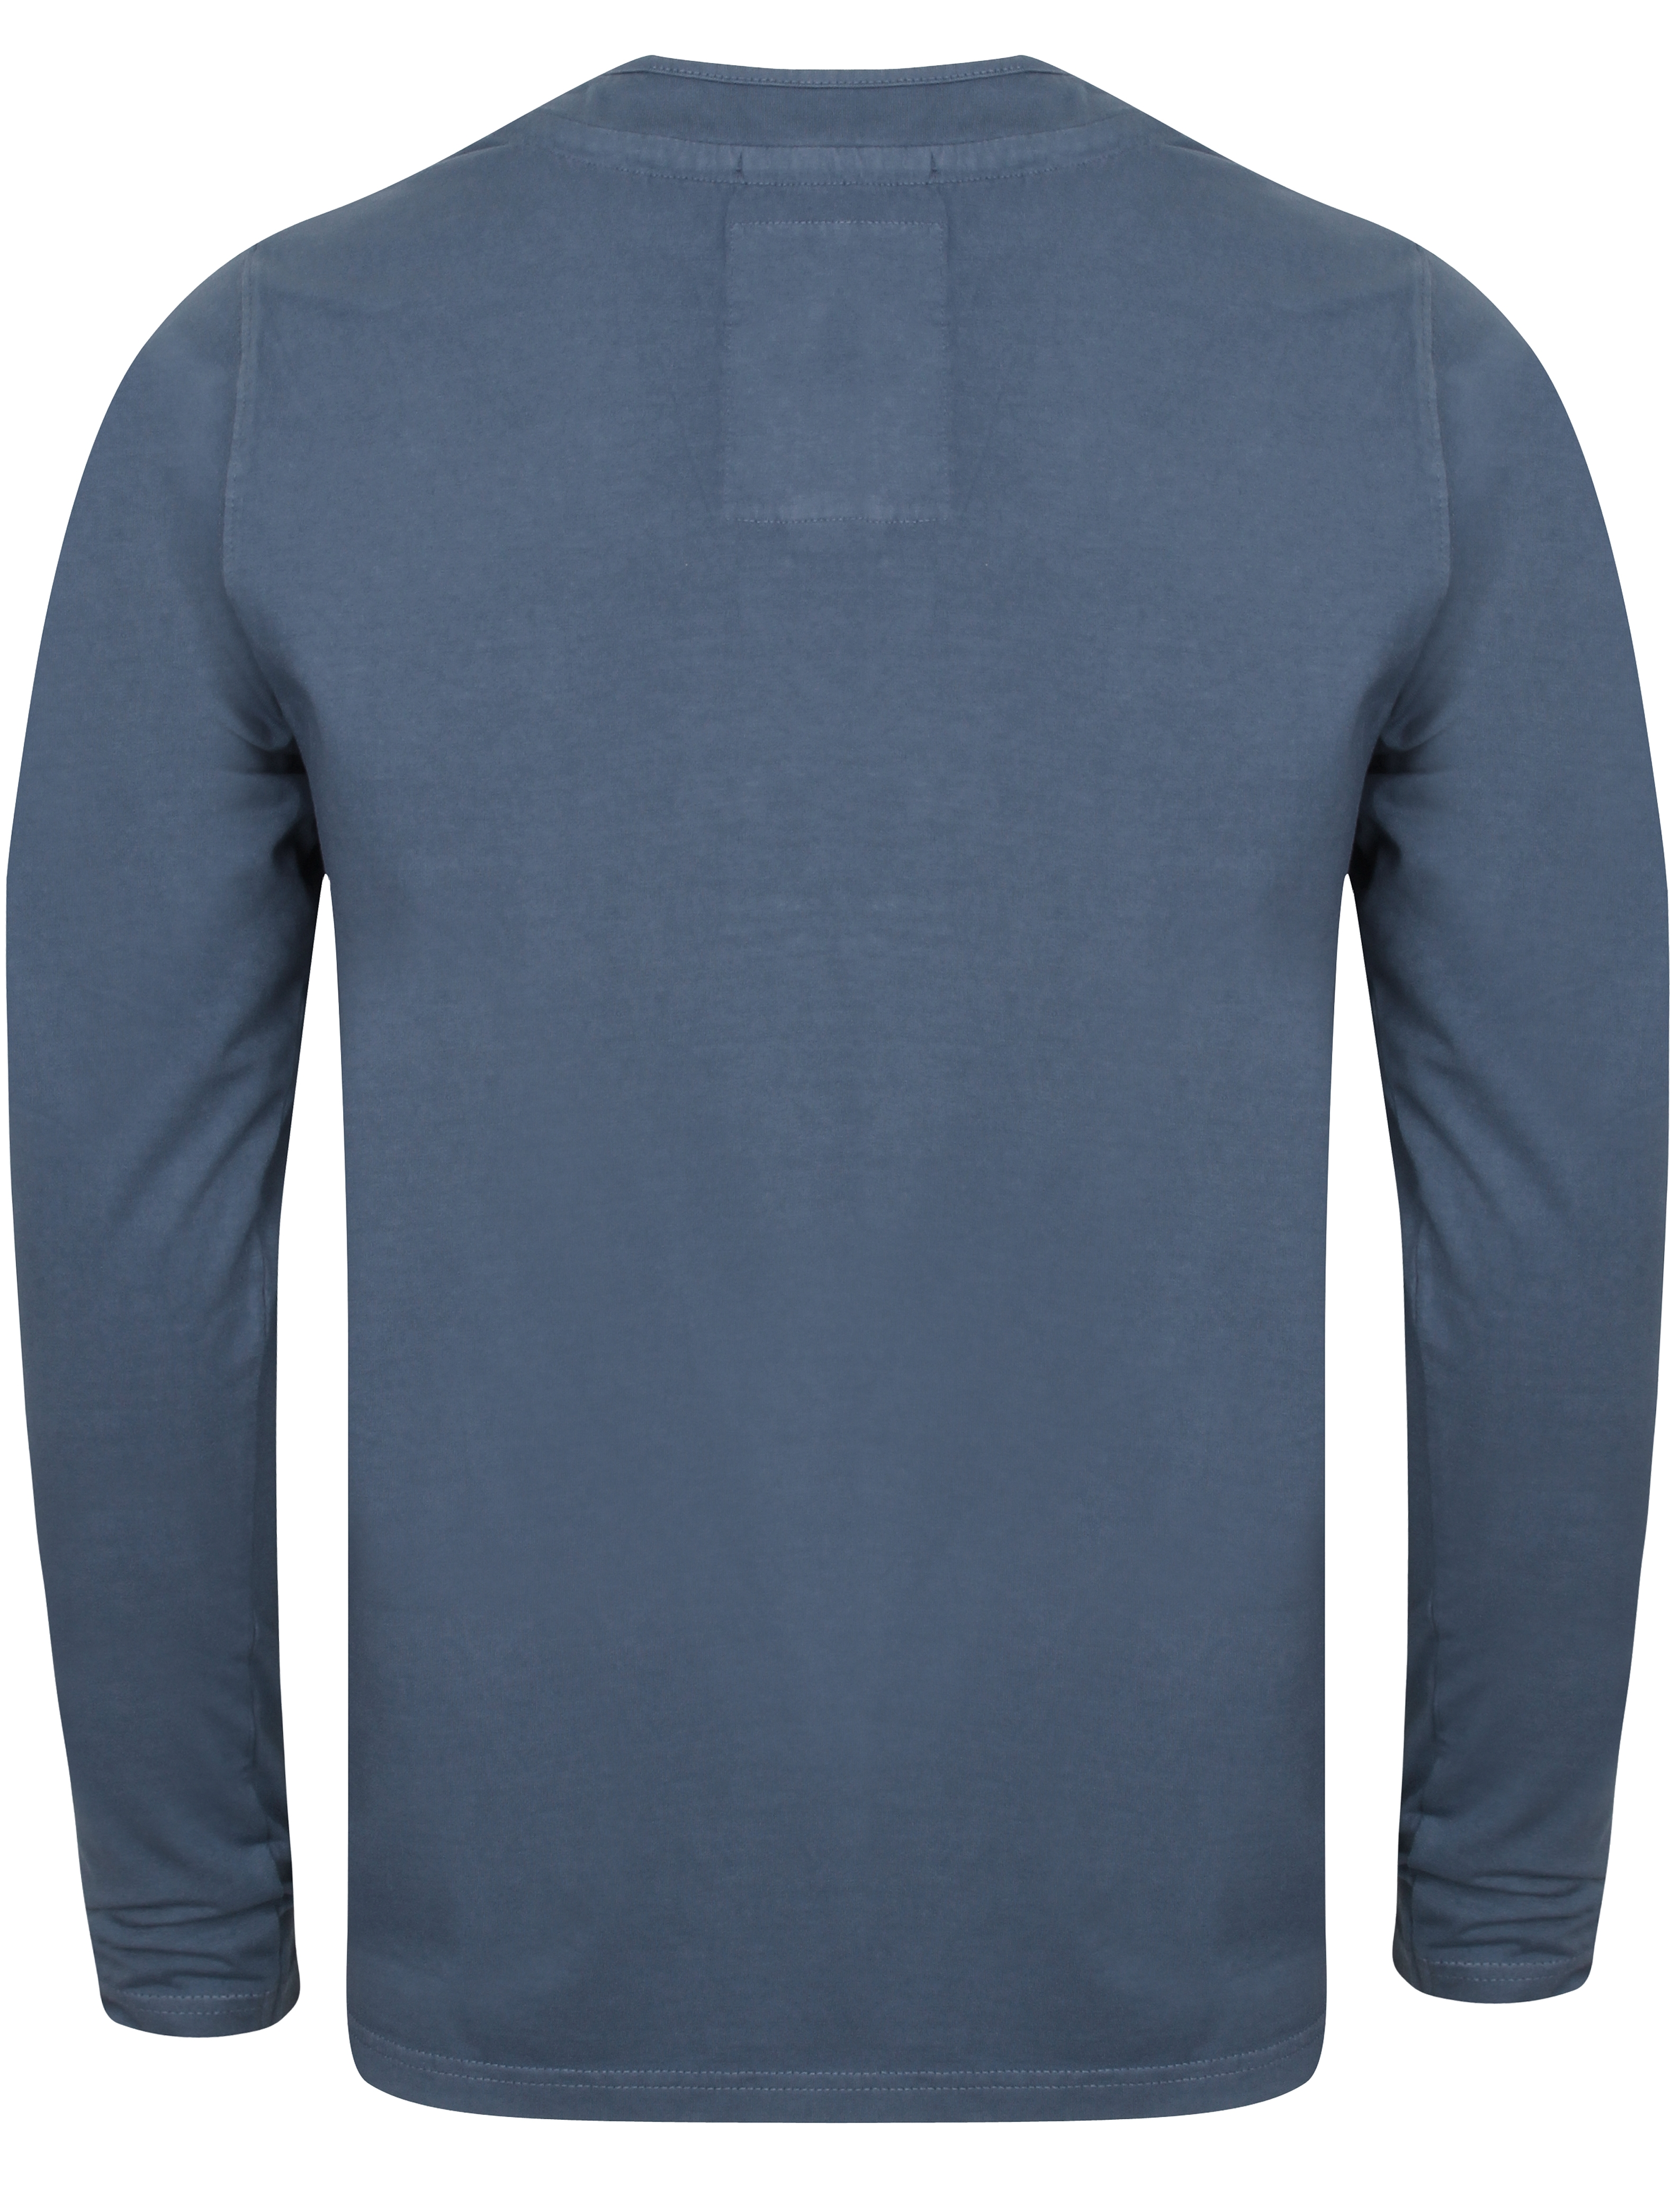 New-Mens-Tokyo-Laundry-Winter-Pines-Crew-Neck-Cotton-Long-Sleeve-Top-Size-S-XL thumbnail 5